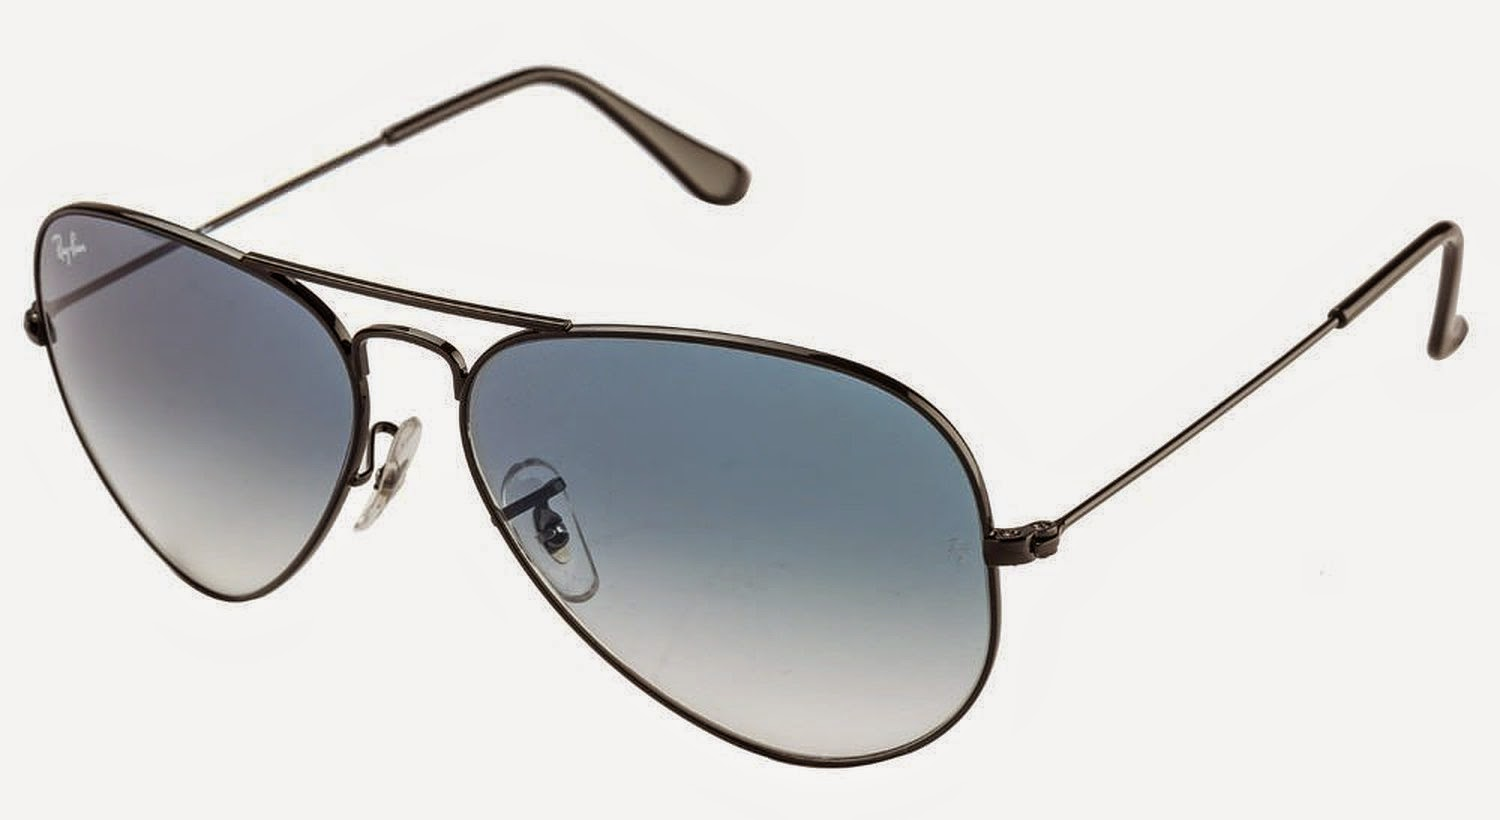 69d578cb3b Price Of Ray Ban Aviator 3025 In India « Heritage Malta